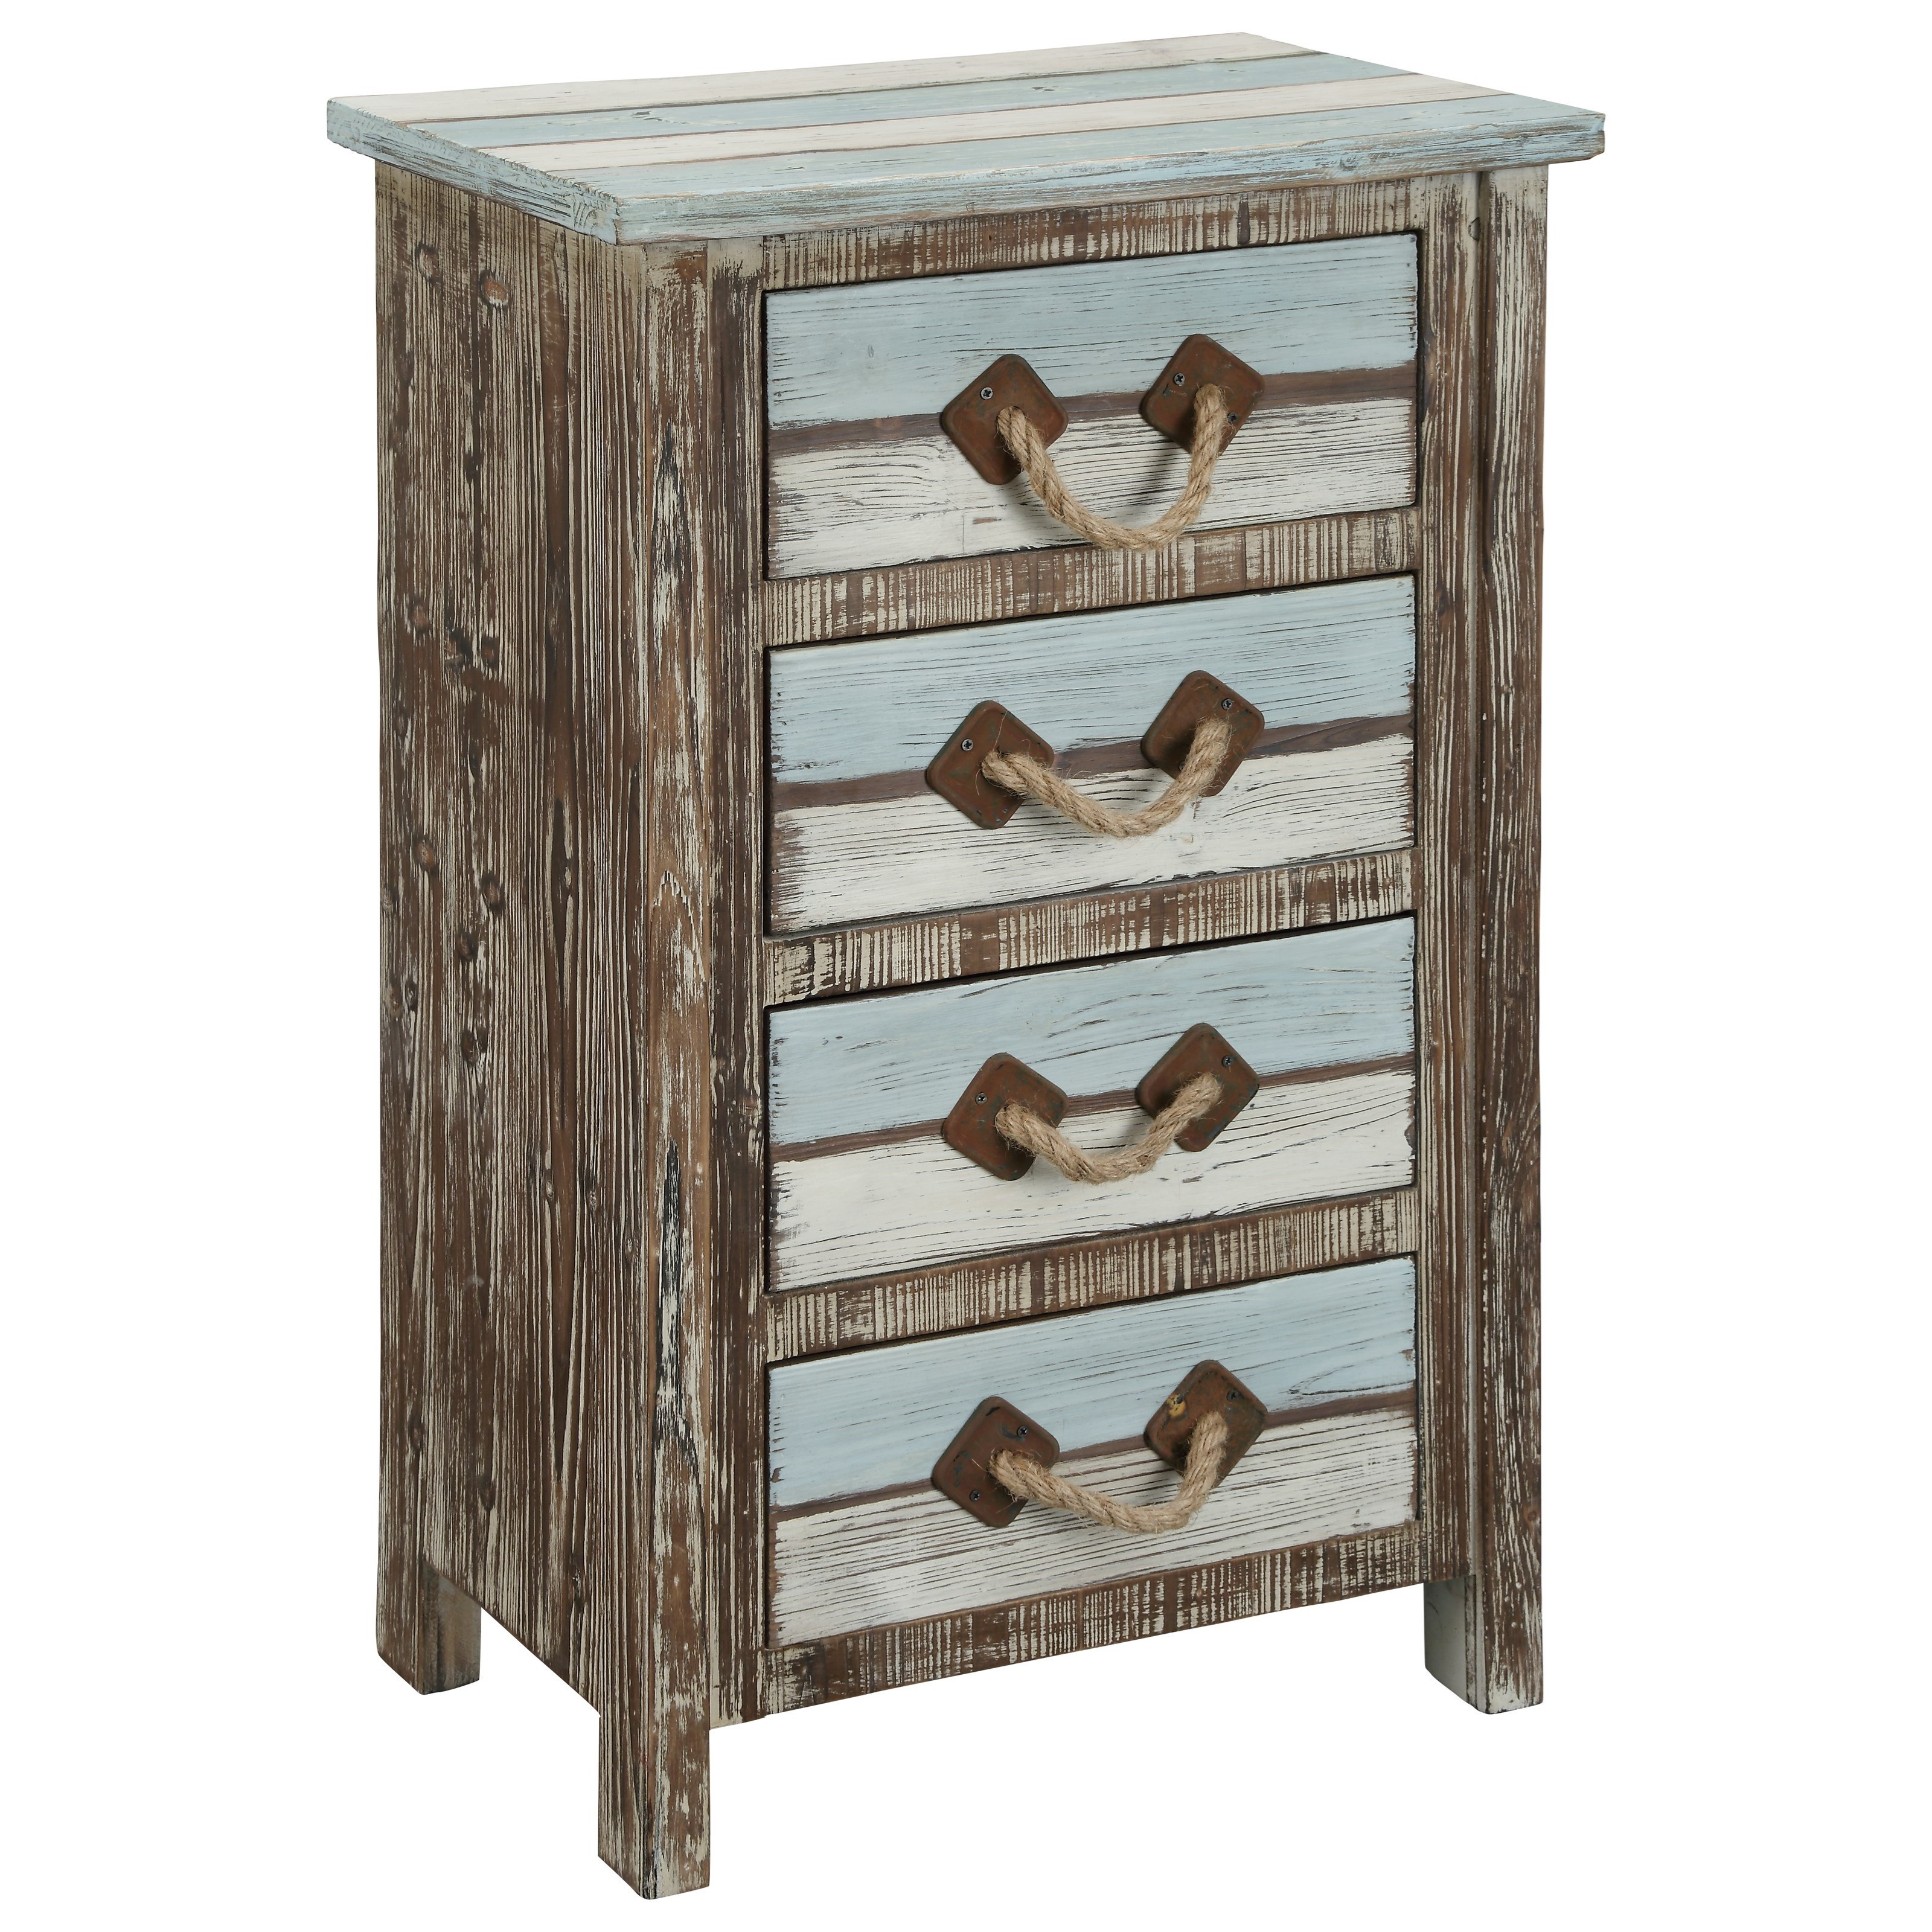 Islander Four Drawer Chest by Coast to Coast Imports at Baer's Furniture